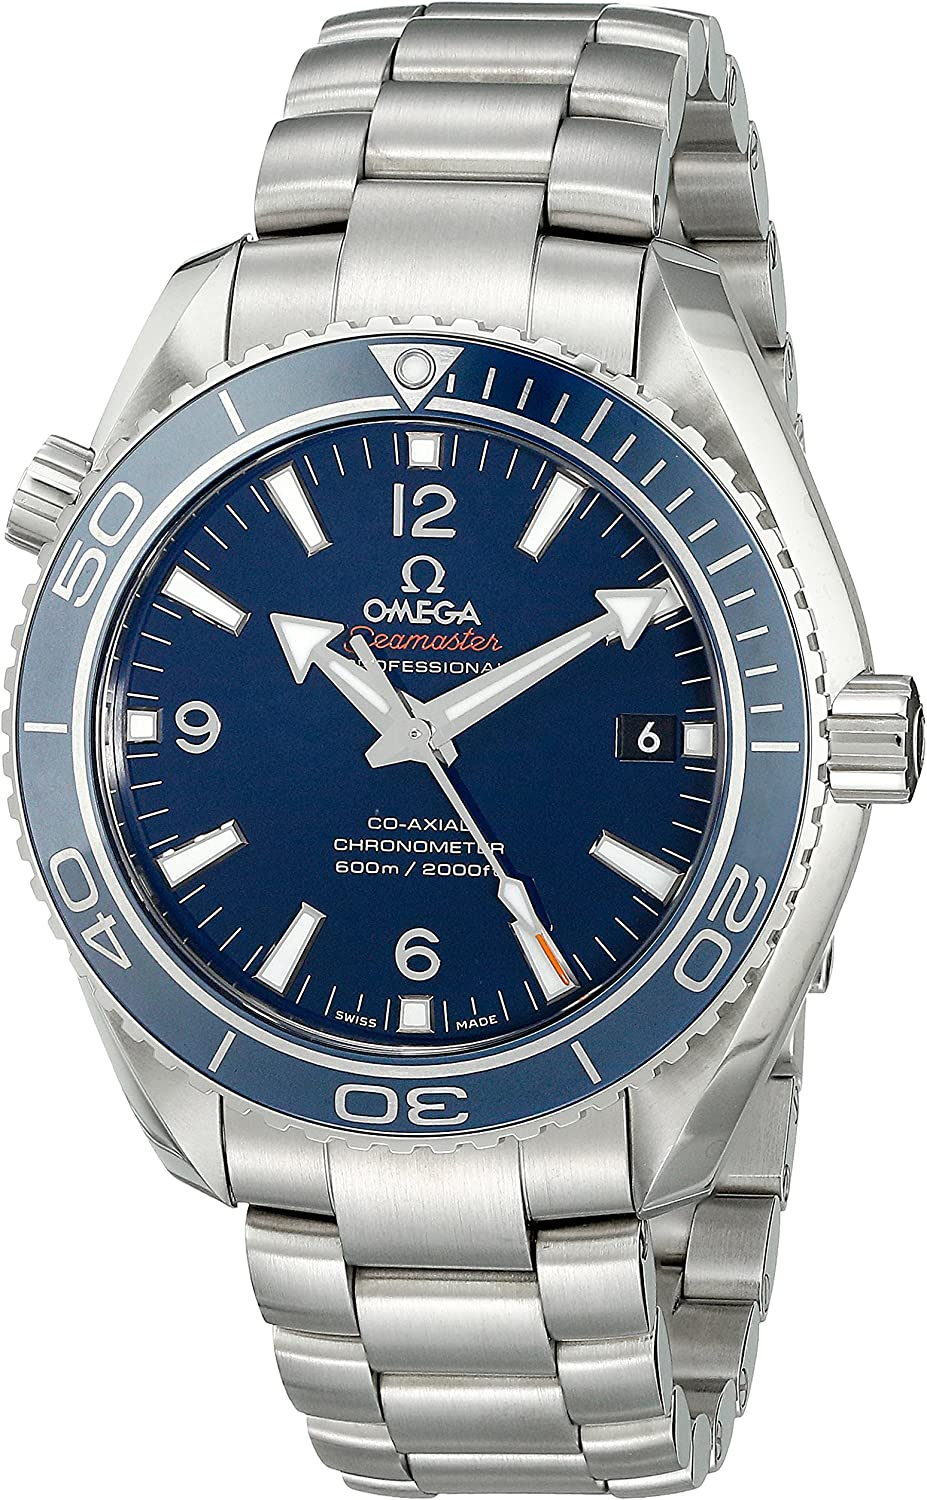 Omega Seamaster Planet Ocean 600m Co-Axial 42mm Titanium Chronometer 232.90.42.21.03.001